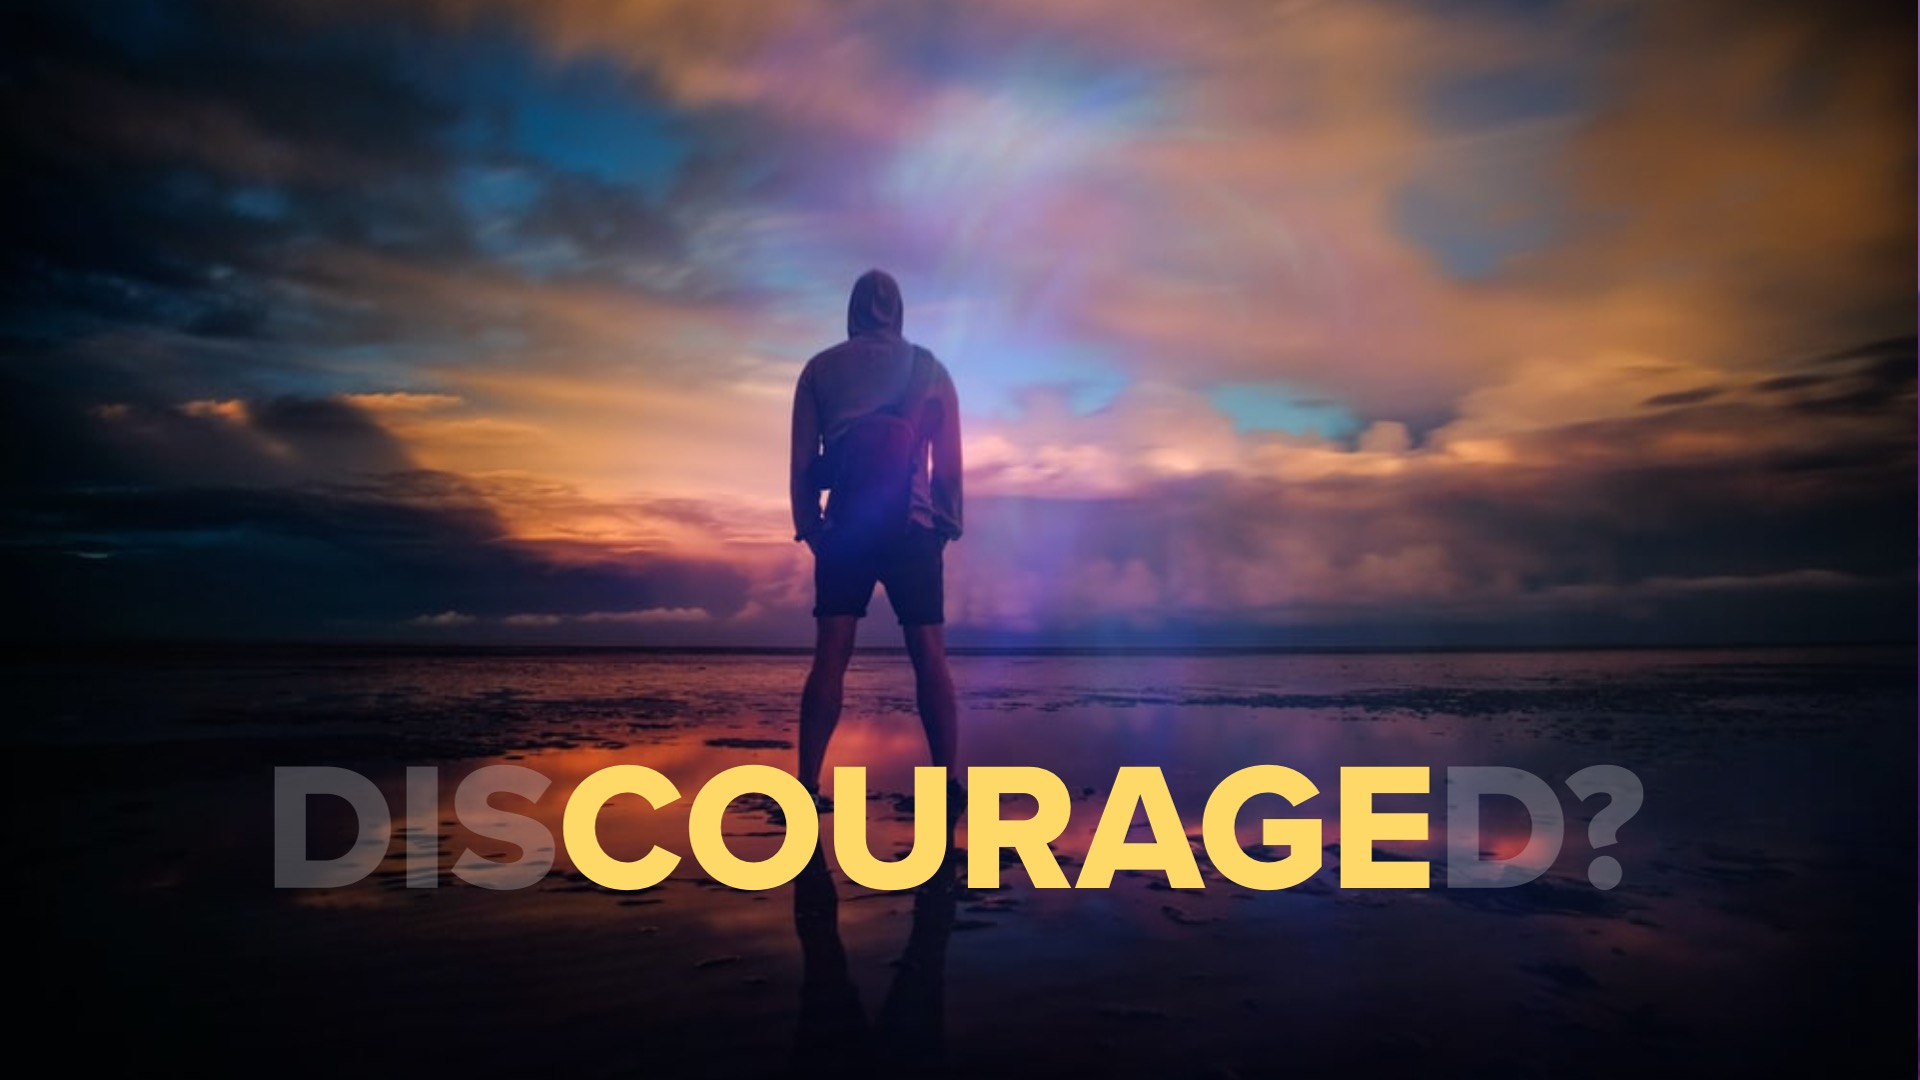 COURAGE  How to Deal with Discouragement